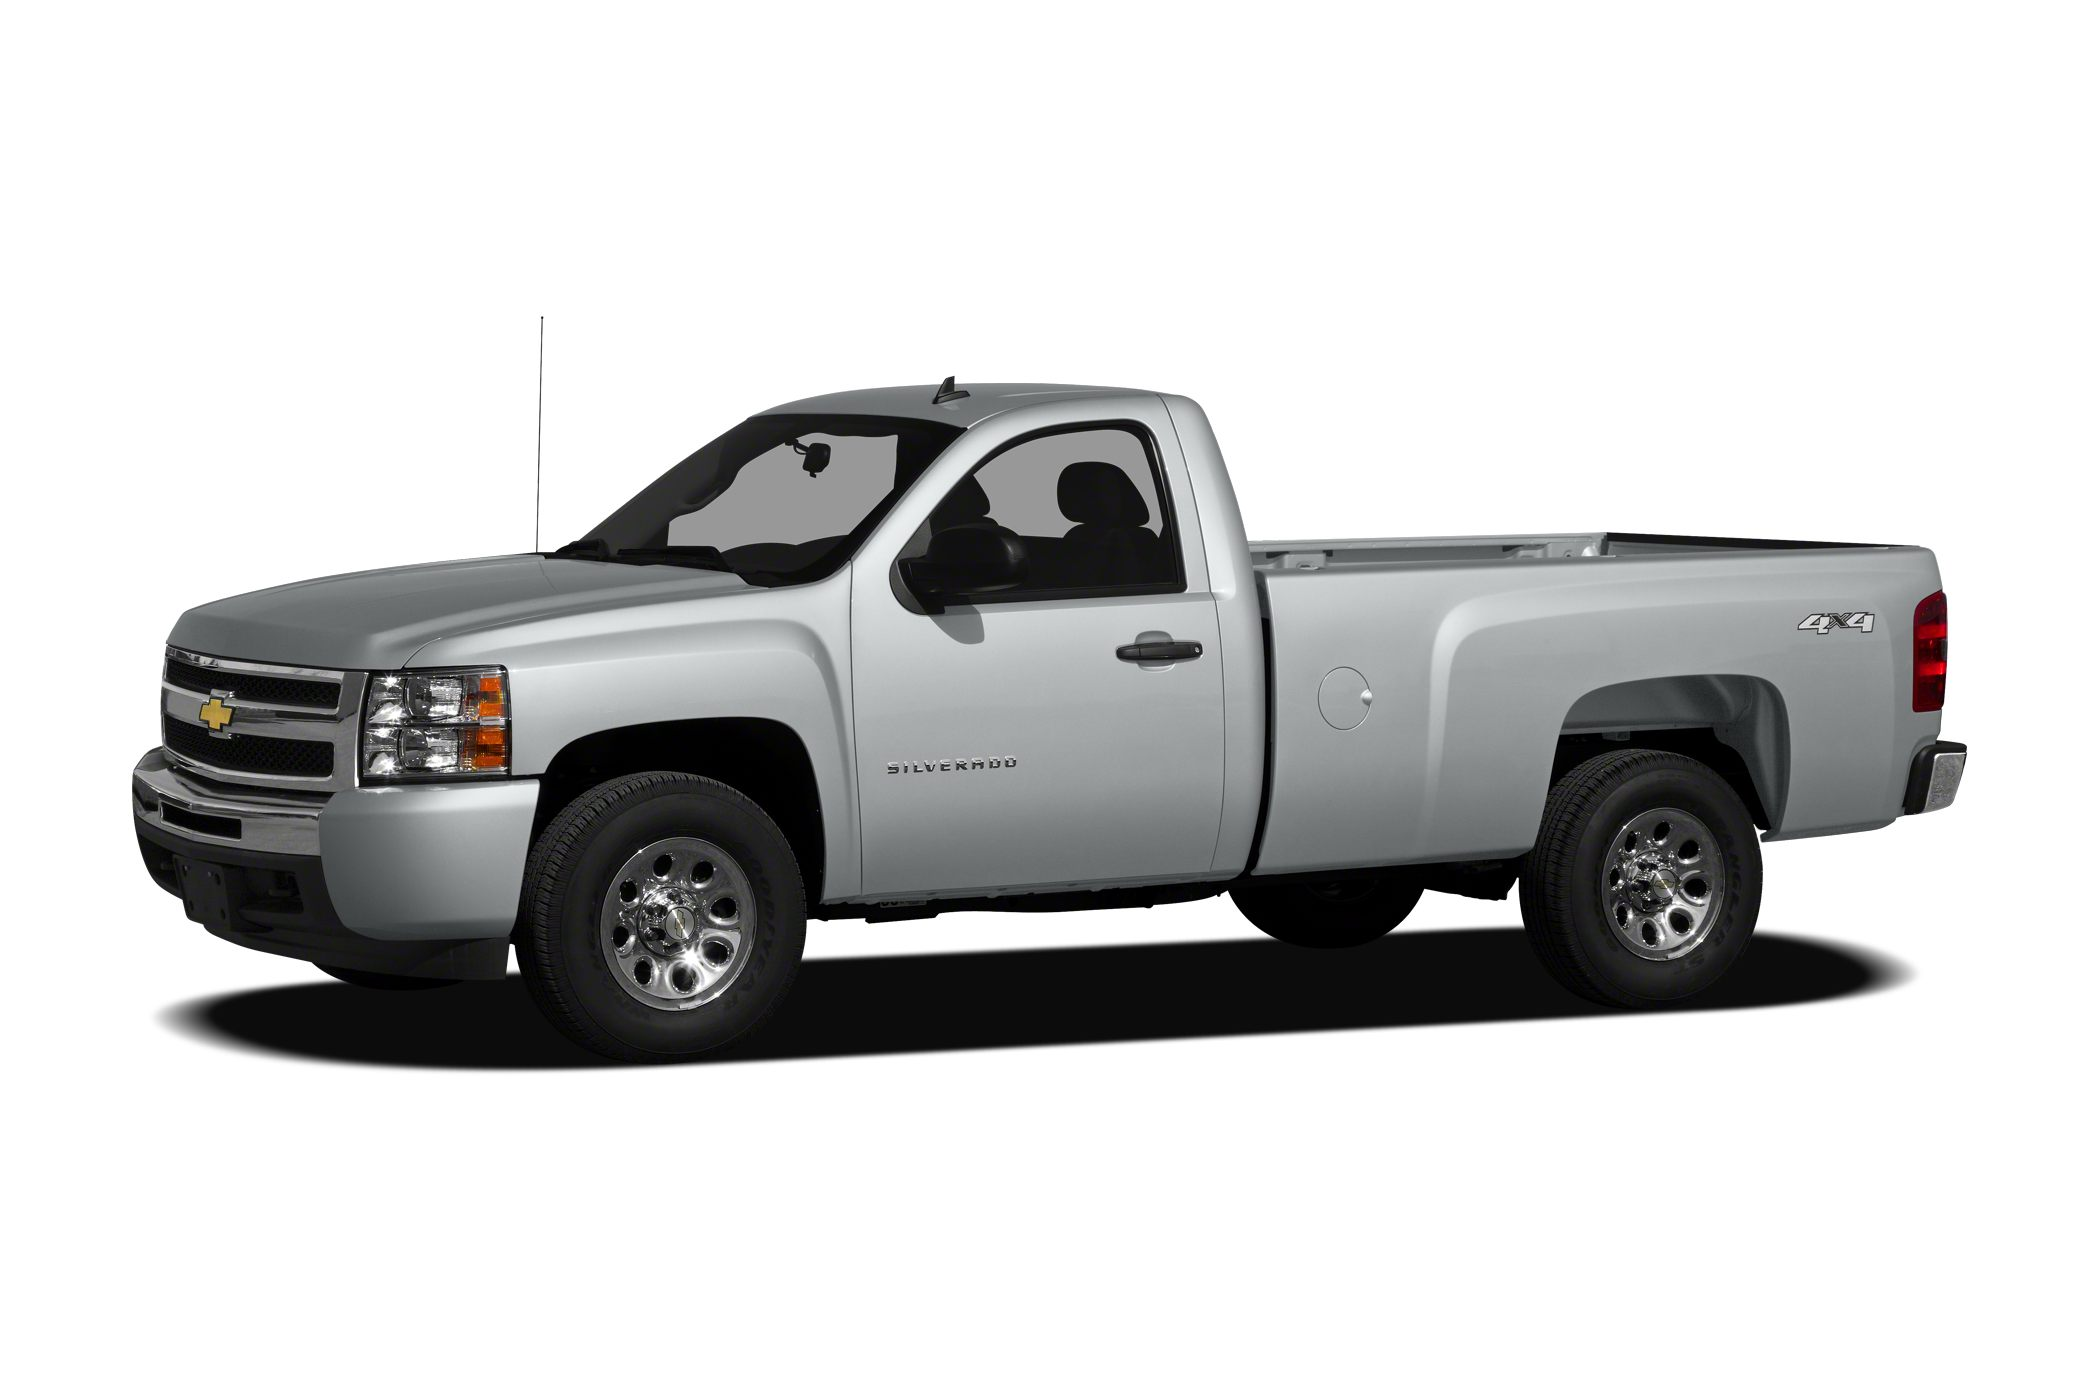 2012 Chevrolet Silverado 1500 LT Crew Cab Pickup for sale in Mabank for $28,246 with 41,031 miles